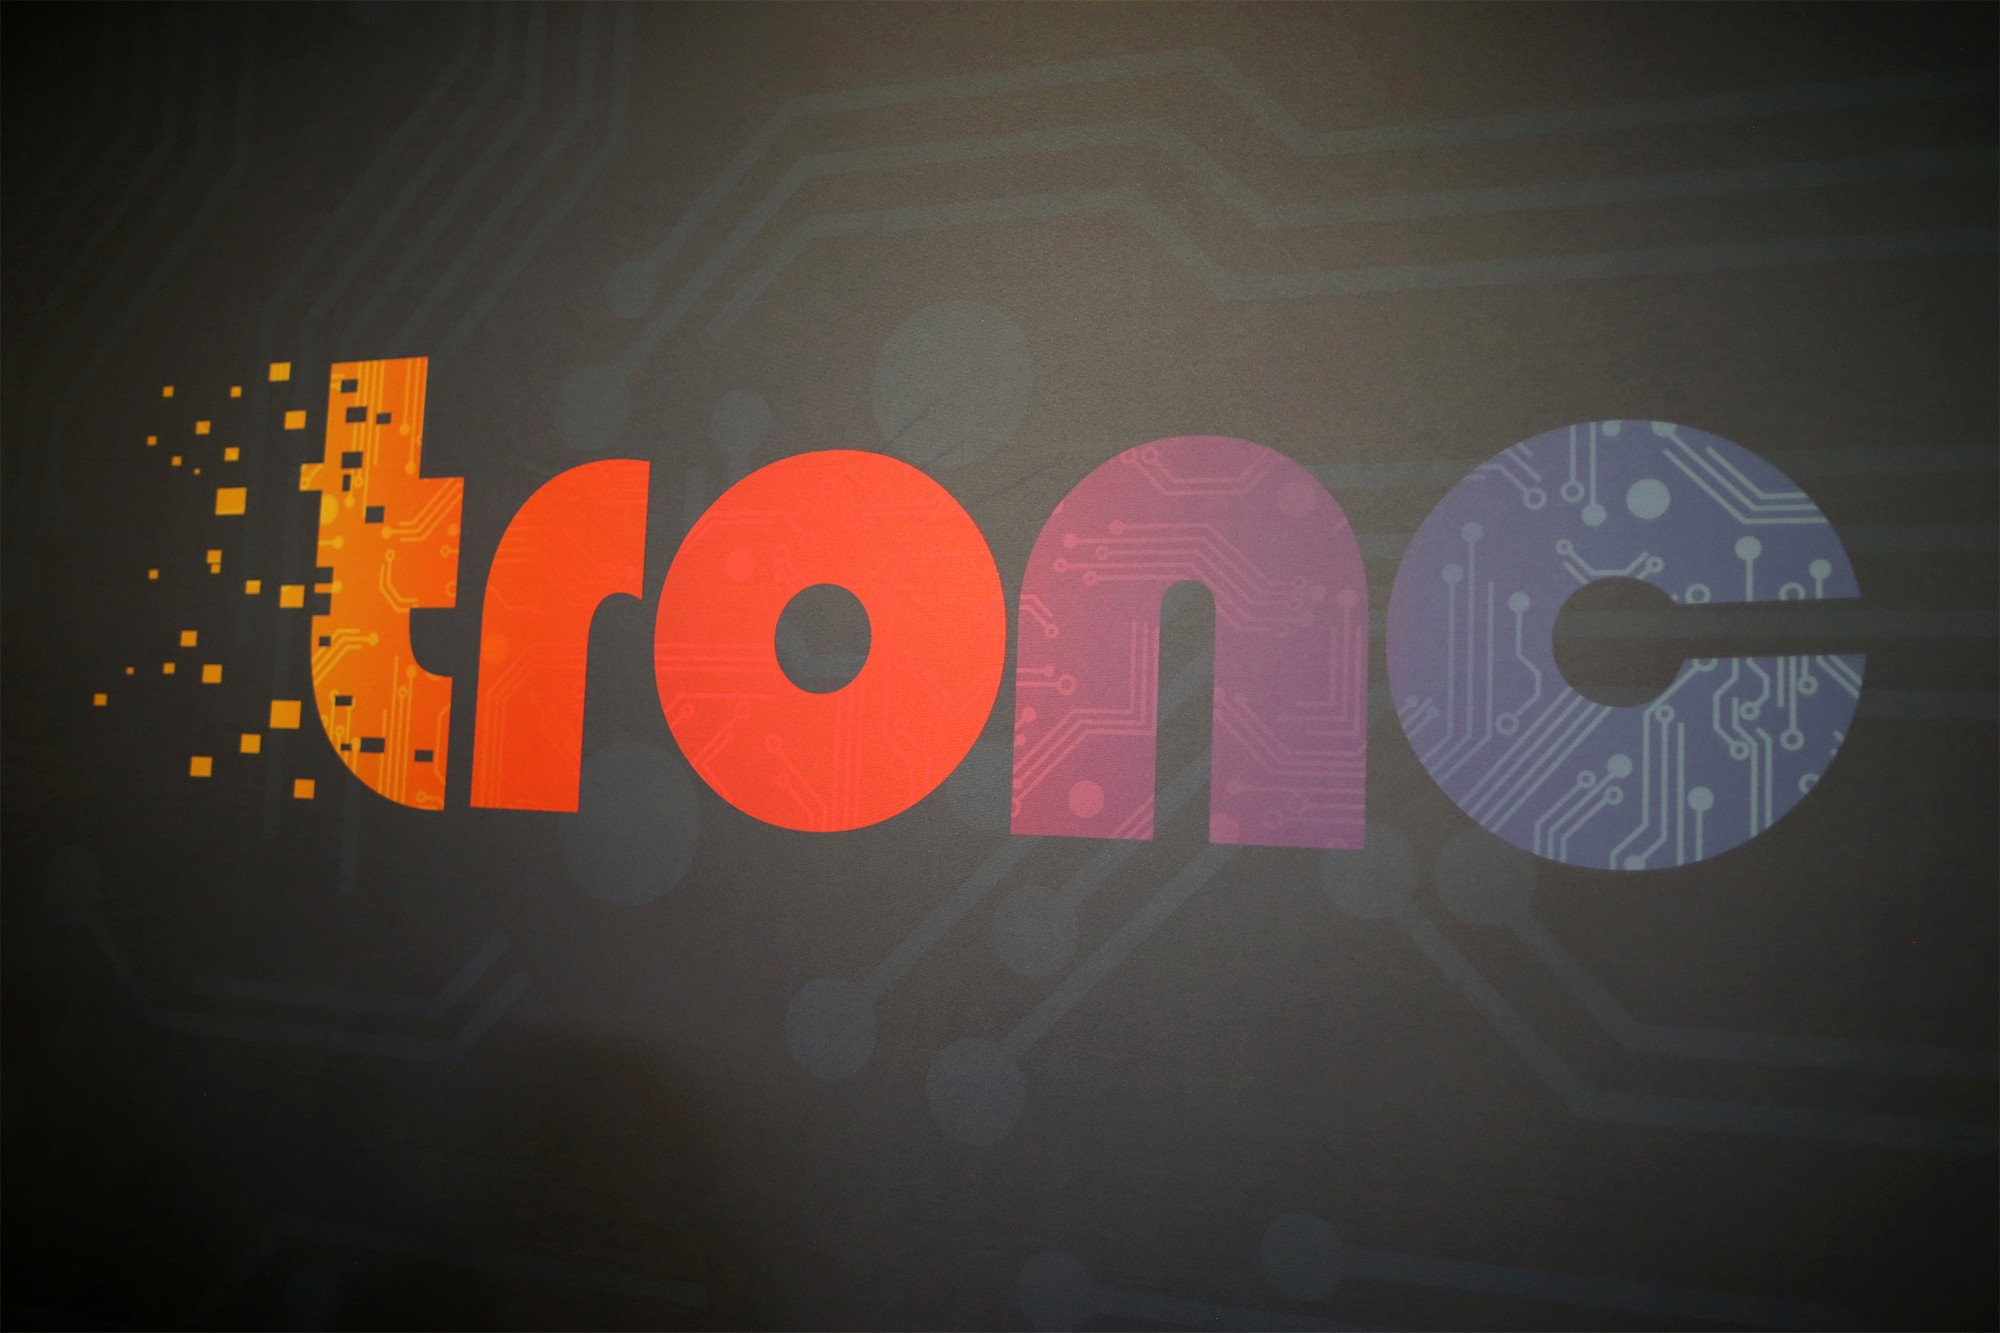 Tronc shares tank after execs offer no fiscal guidance for 2018